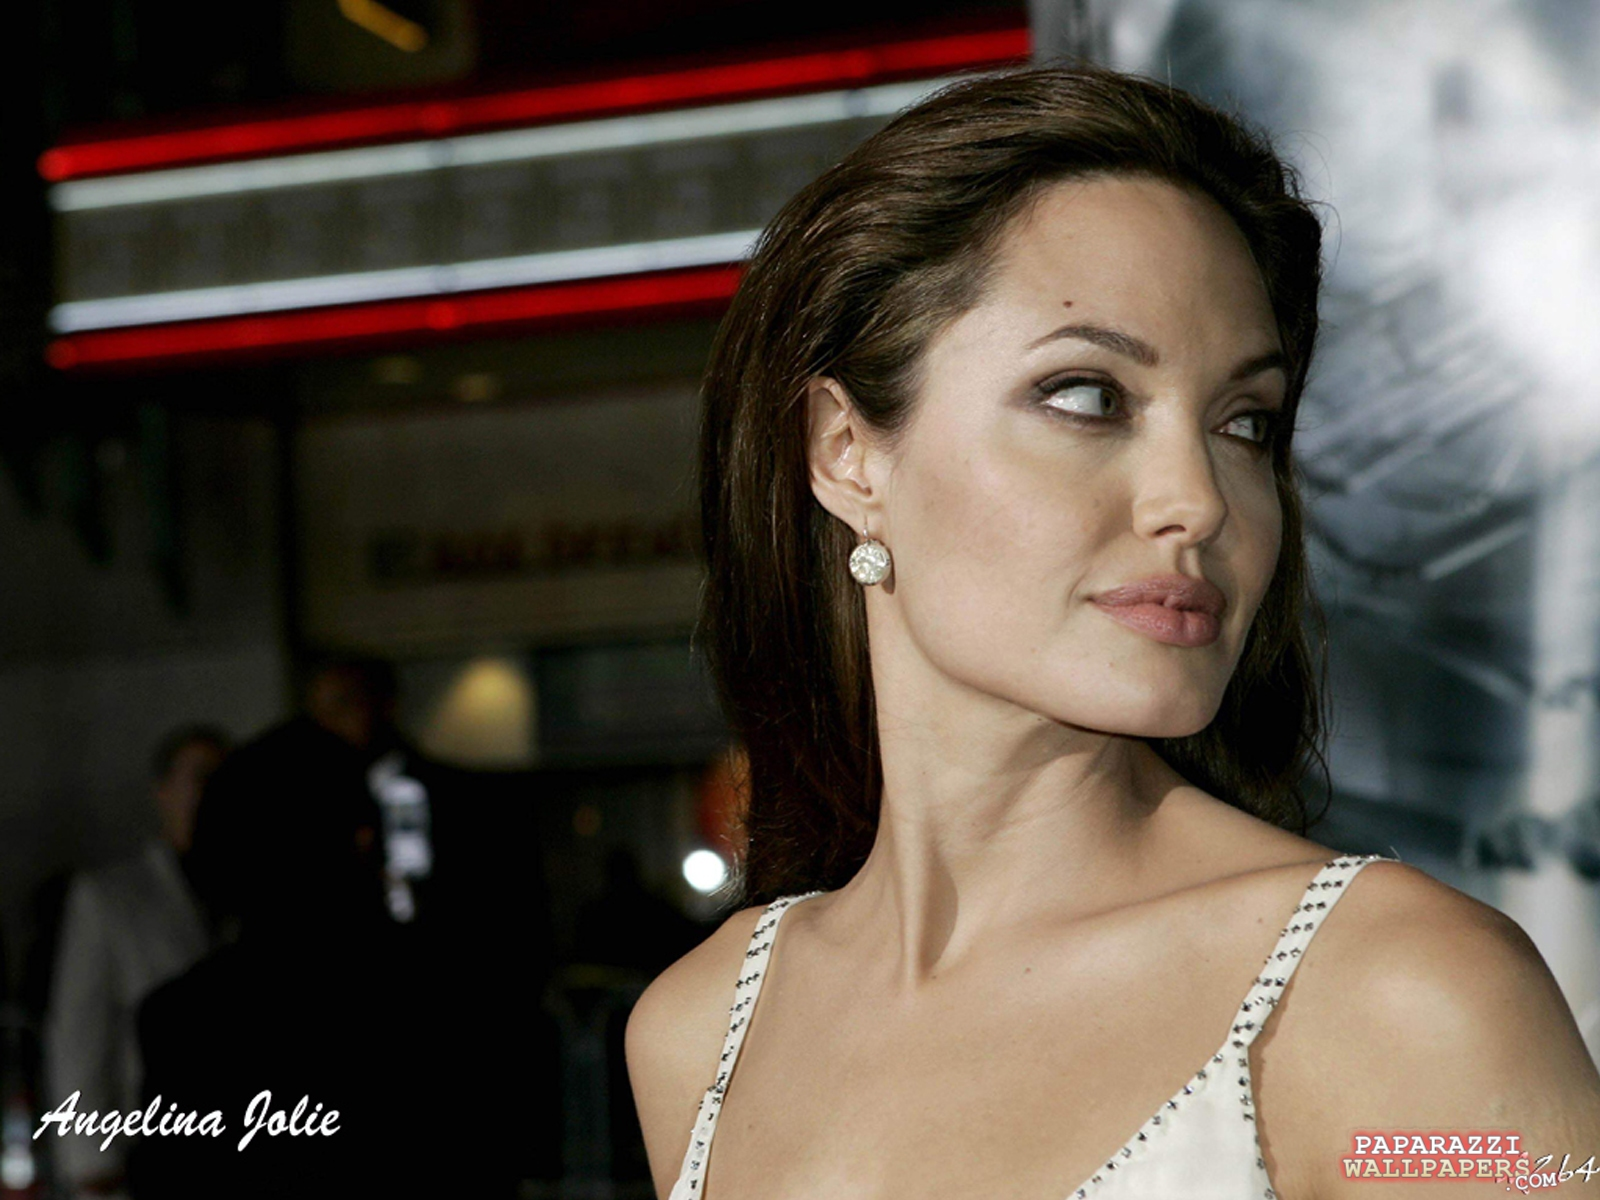 angelina jolie wallpapers 013